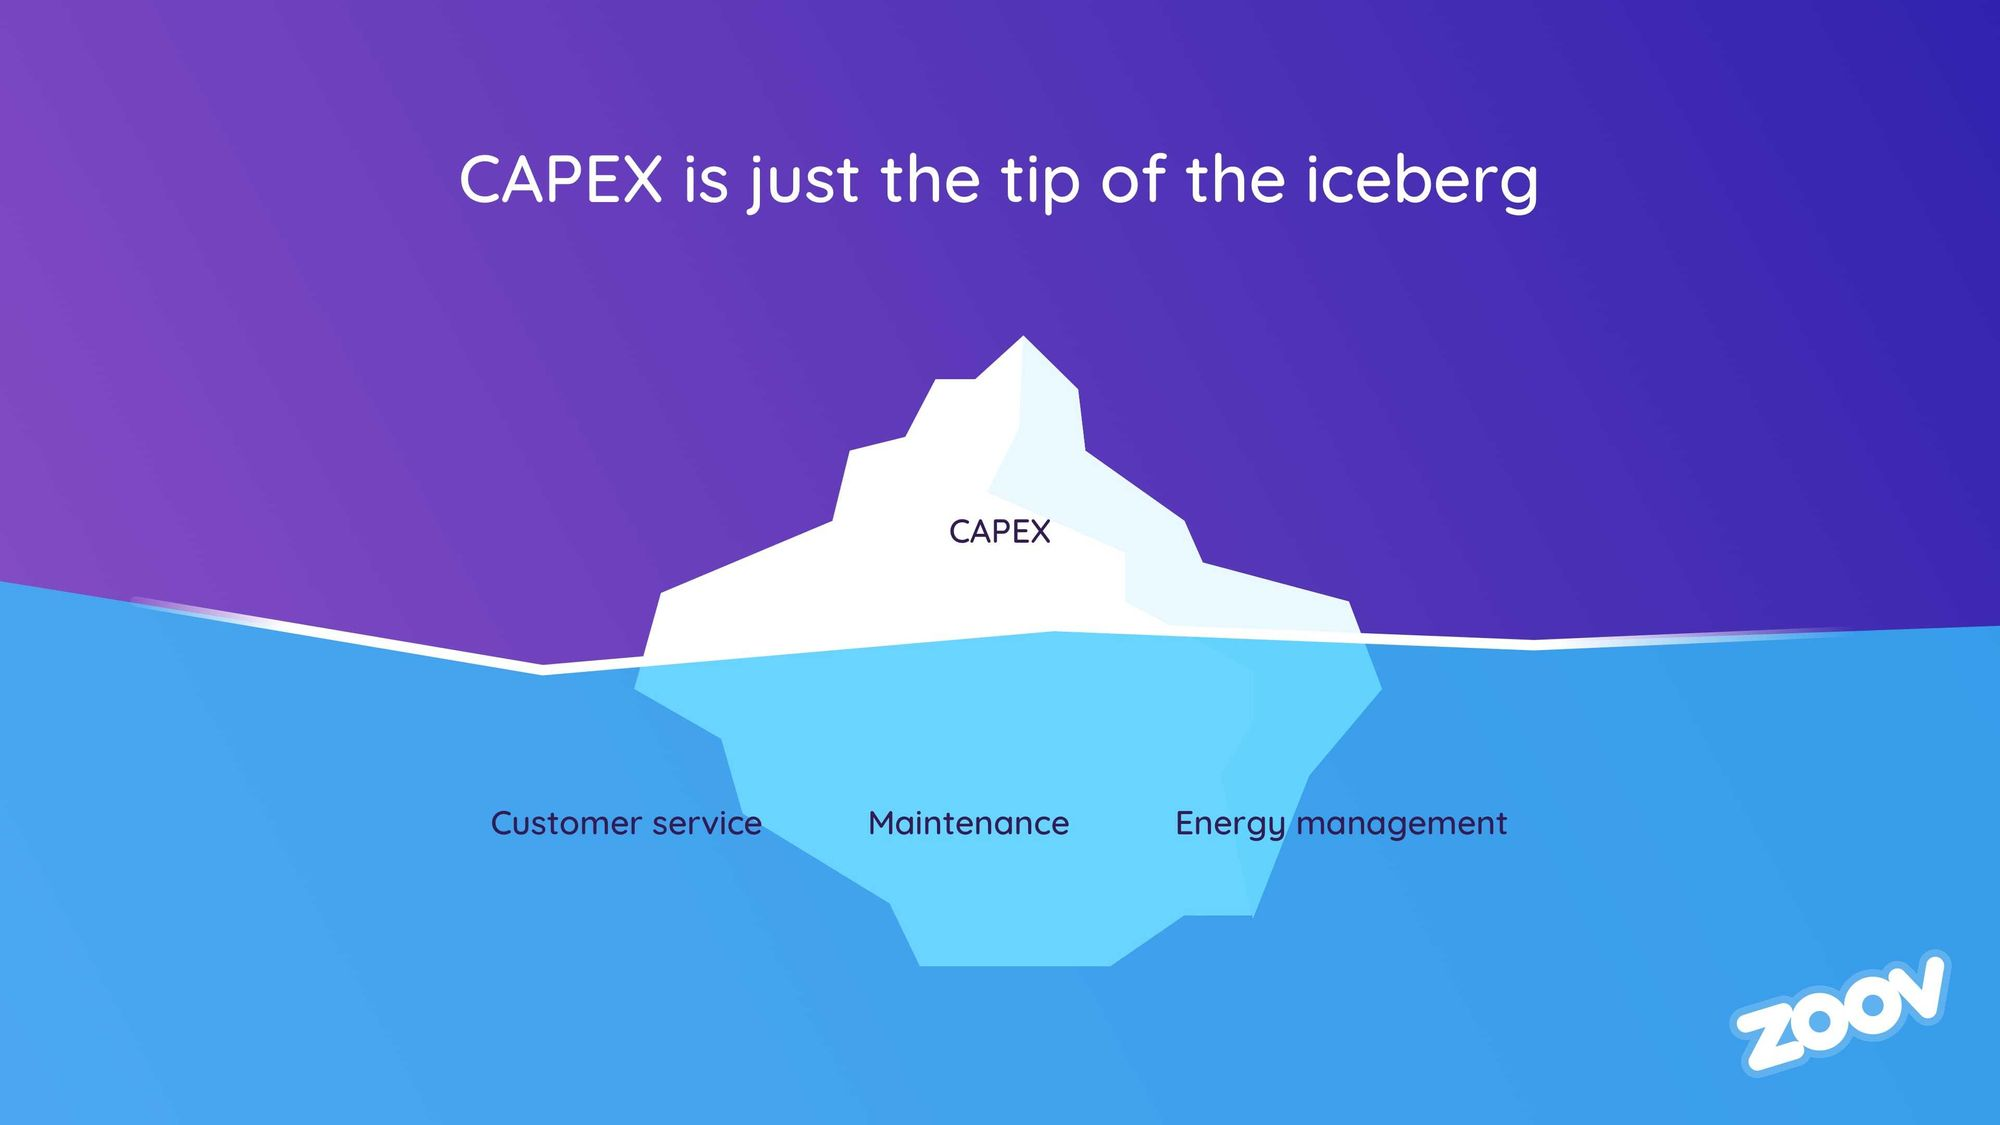 CAPEX is just the tip of the iceberg